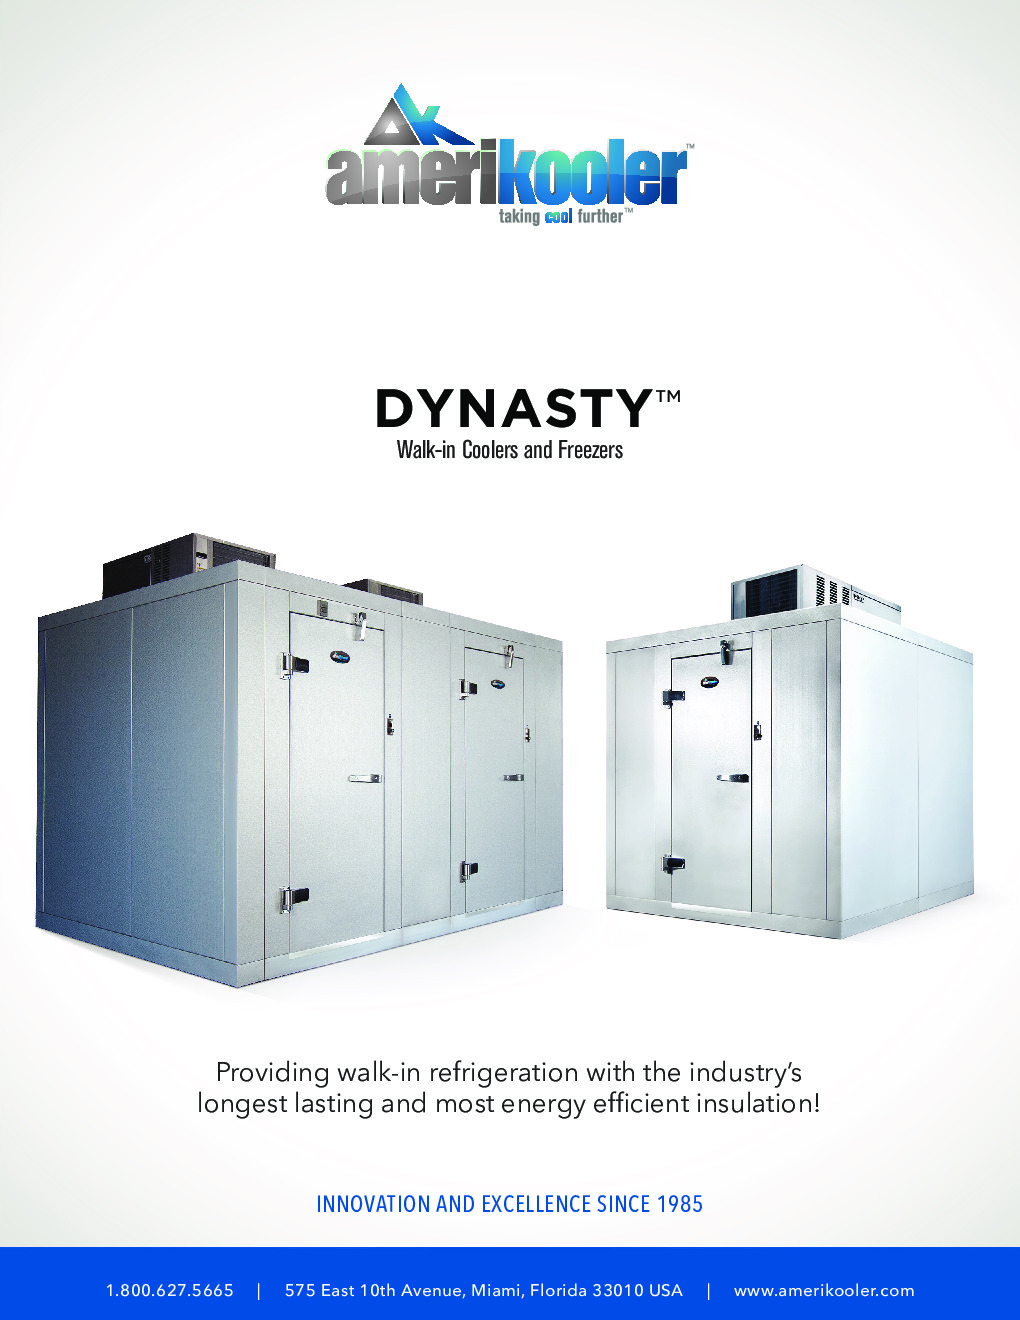 AmeriKooler DW091777N-5/12-RM 9' X 17' Walk-In Cooler, 12' L Cooler without Floor and 5' L Freezer, Remote